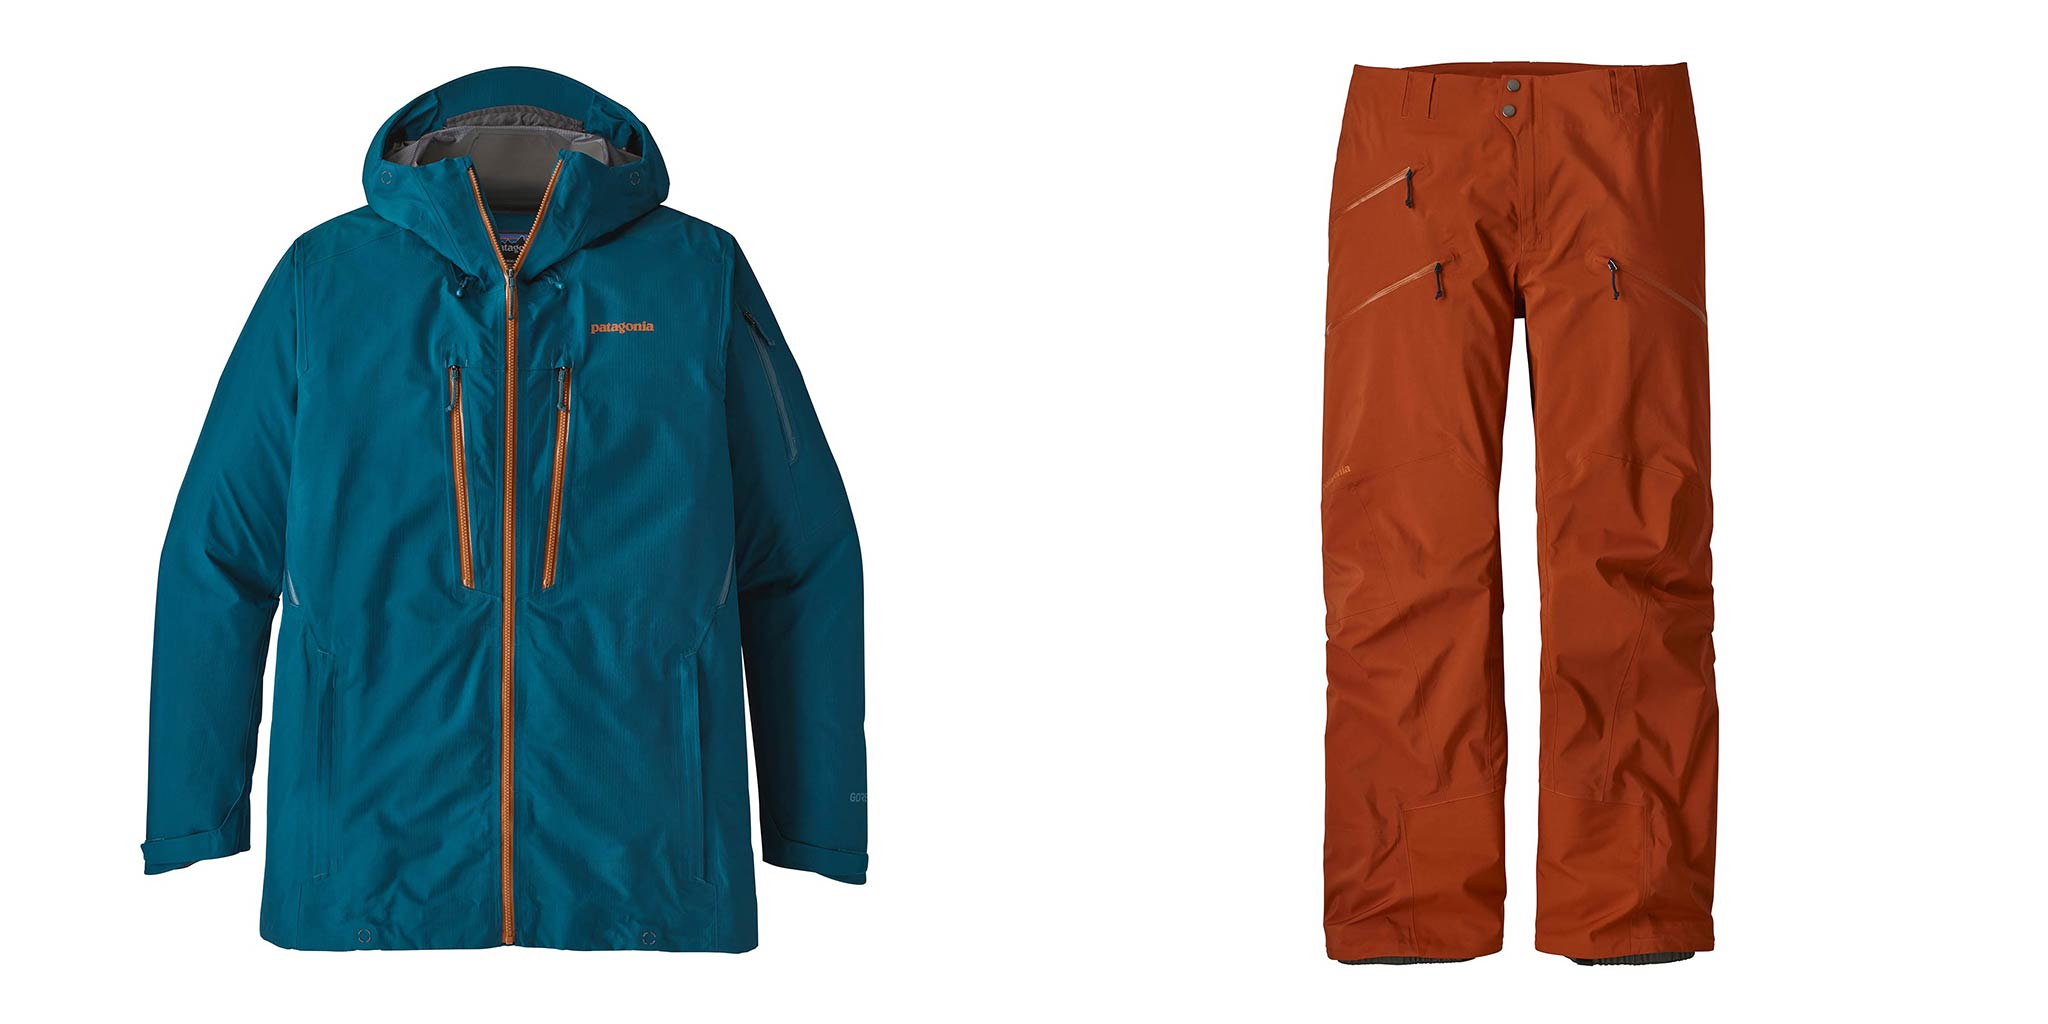 Männer: Patagonia PowSlayer Jacket & Pants